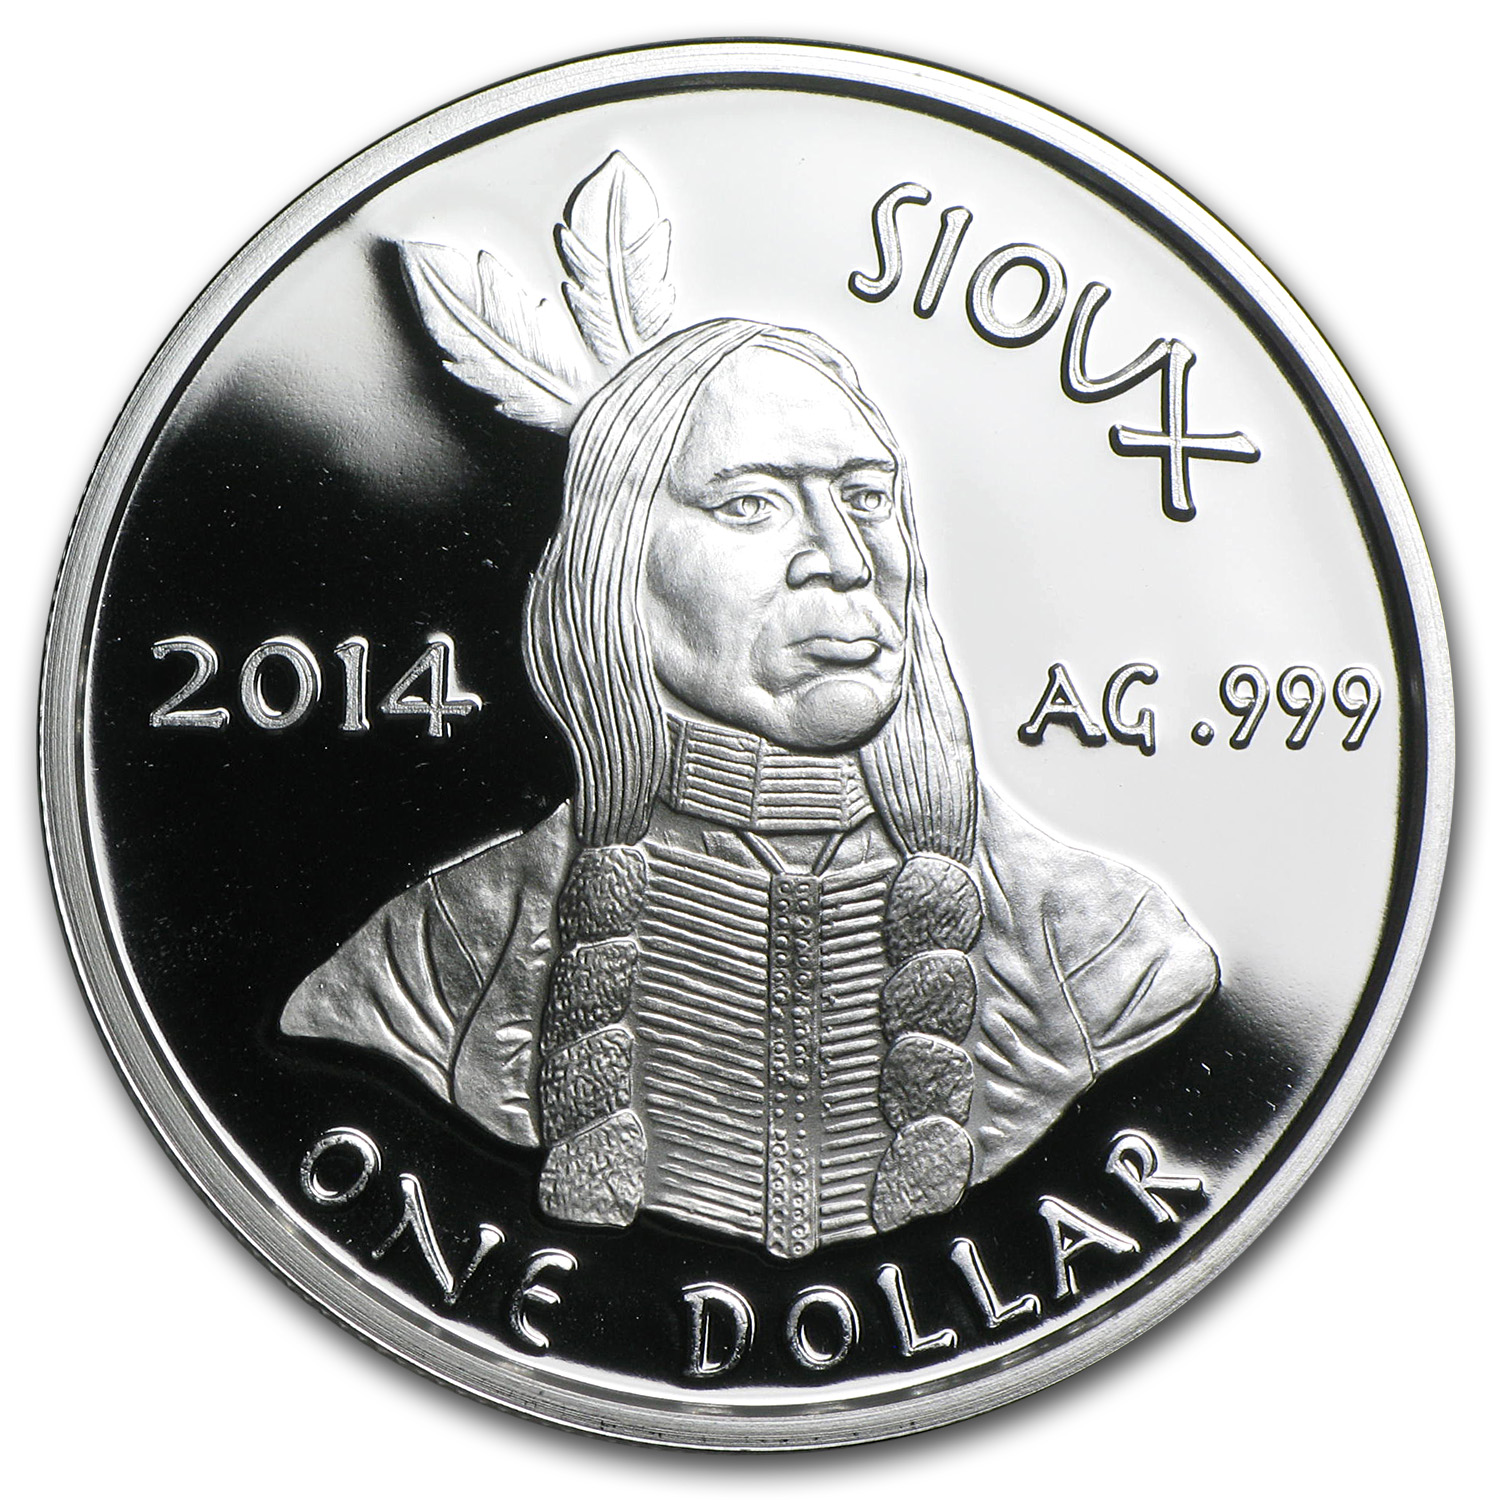 Oglala Sioux Tribe 2014 1 oz Silver Proof Coin